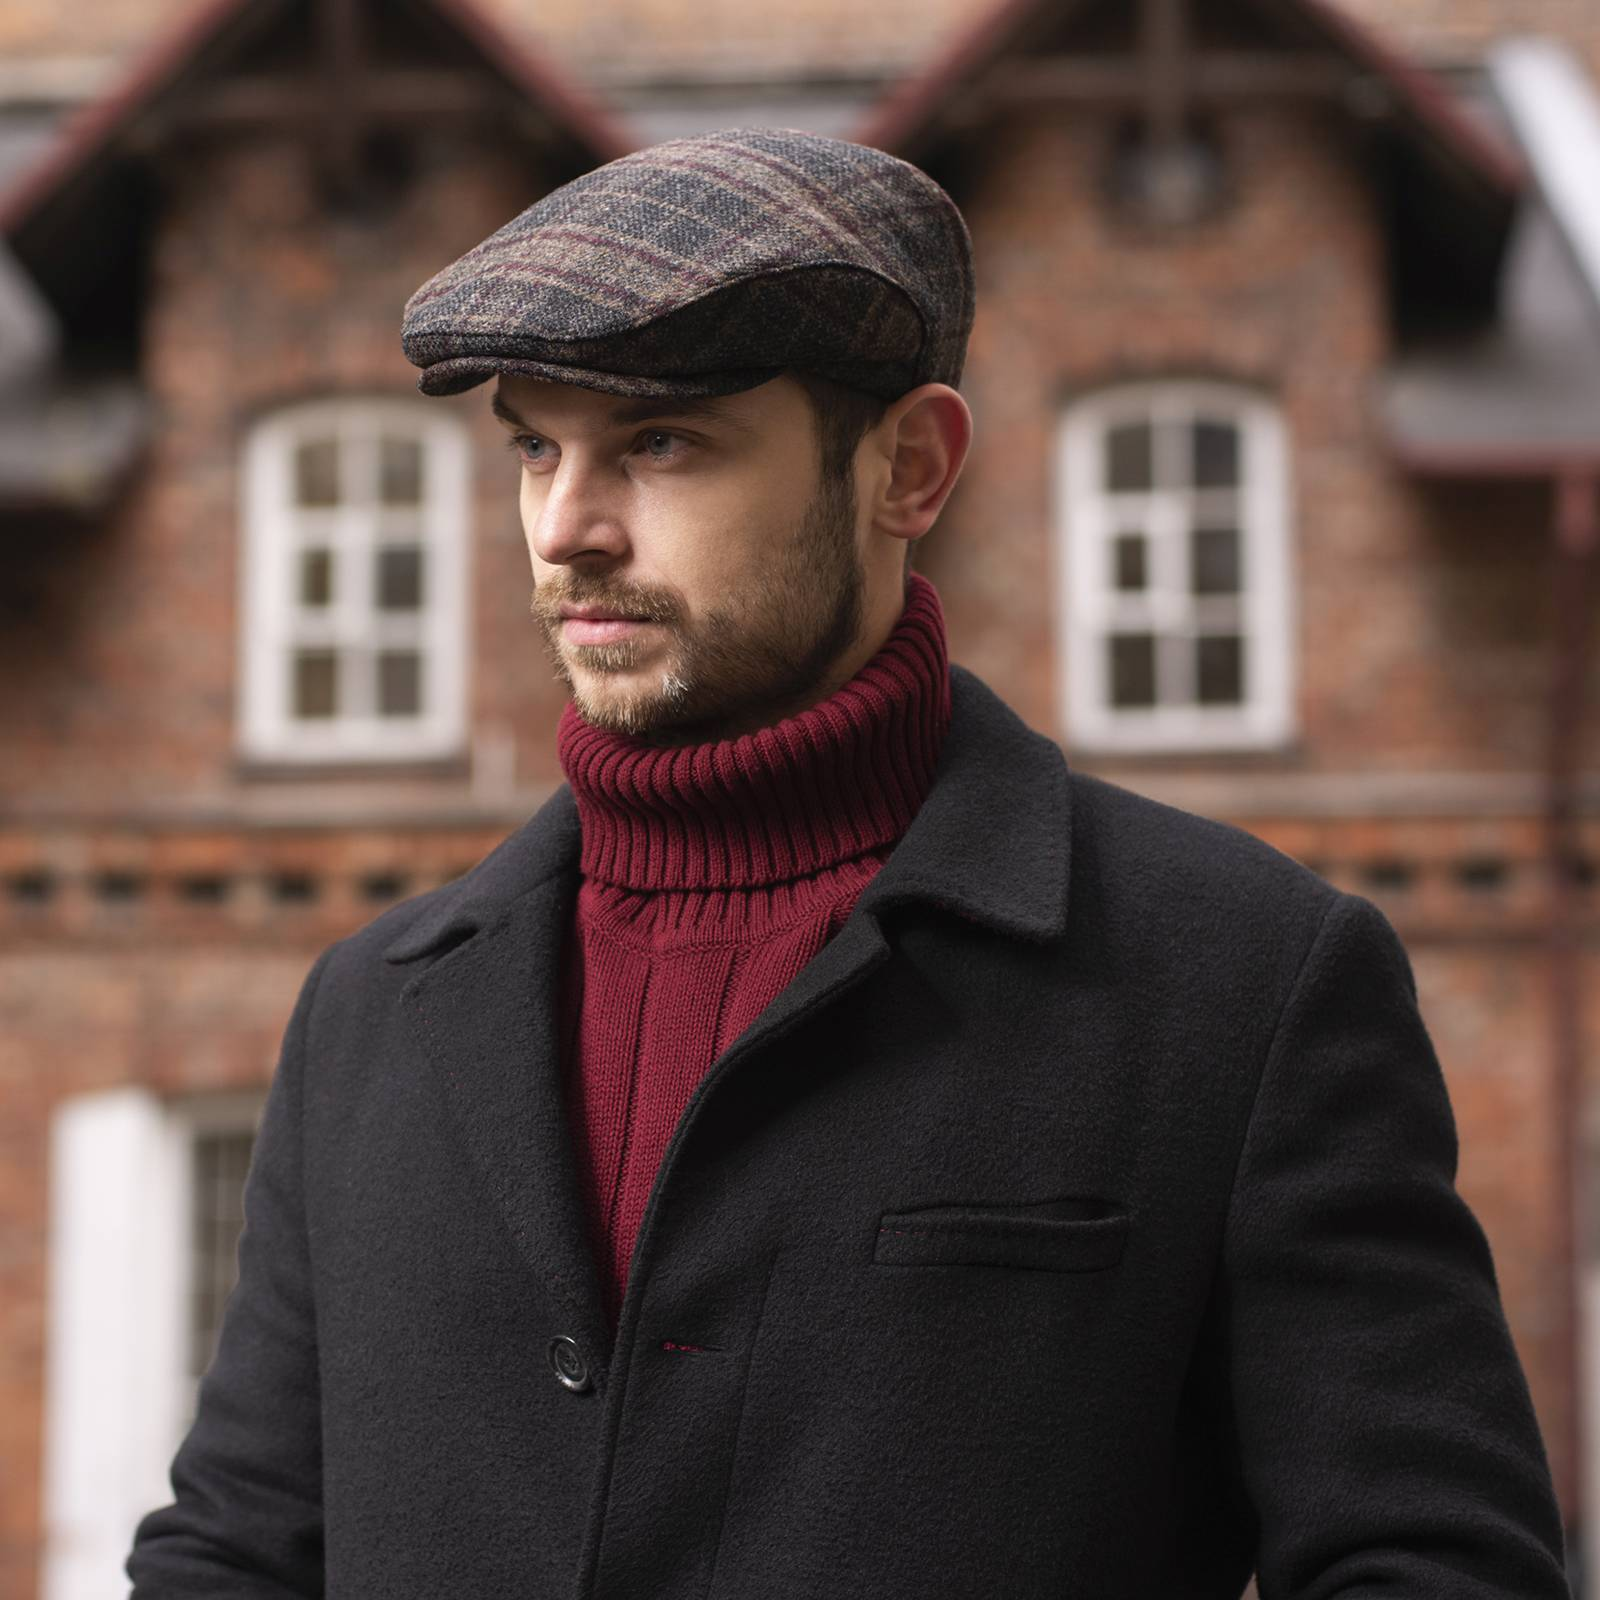 Merino wool fall flat cap